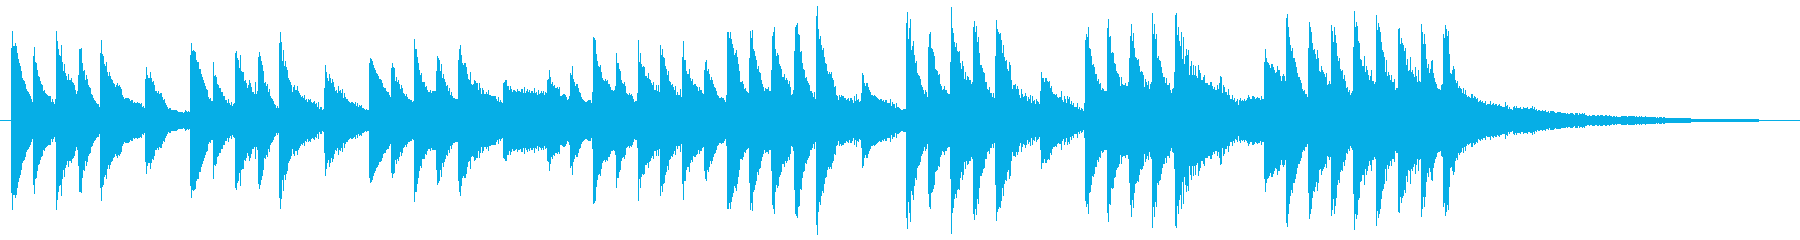 Crying piano jingle's reproduced waveform